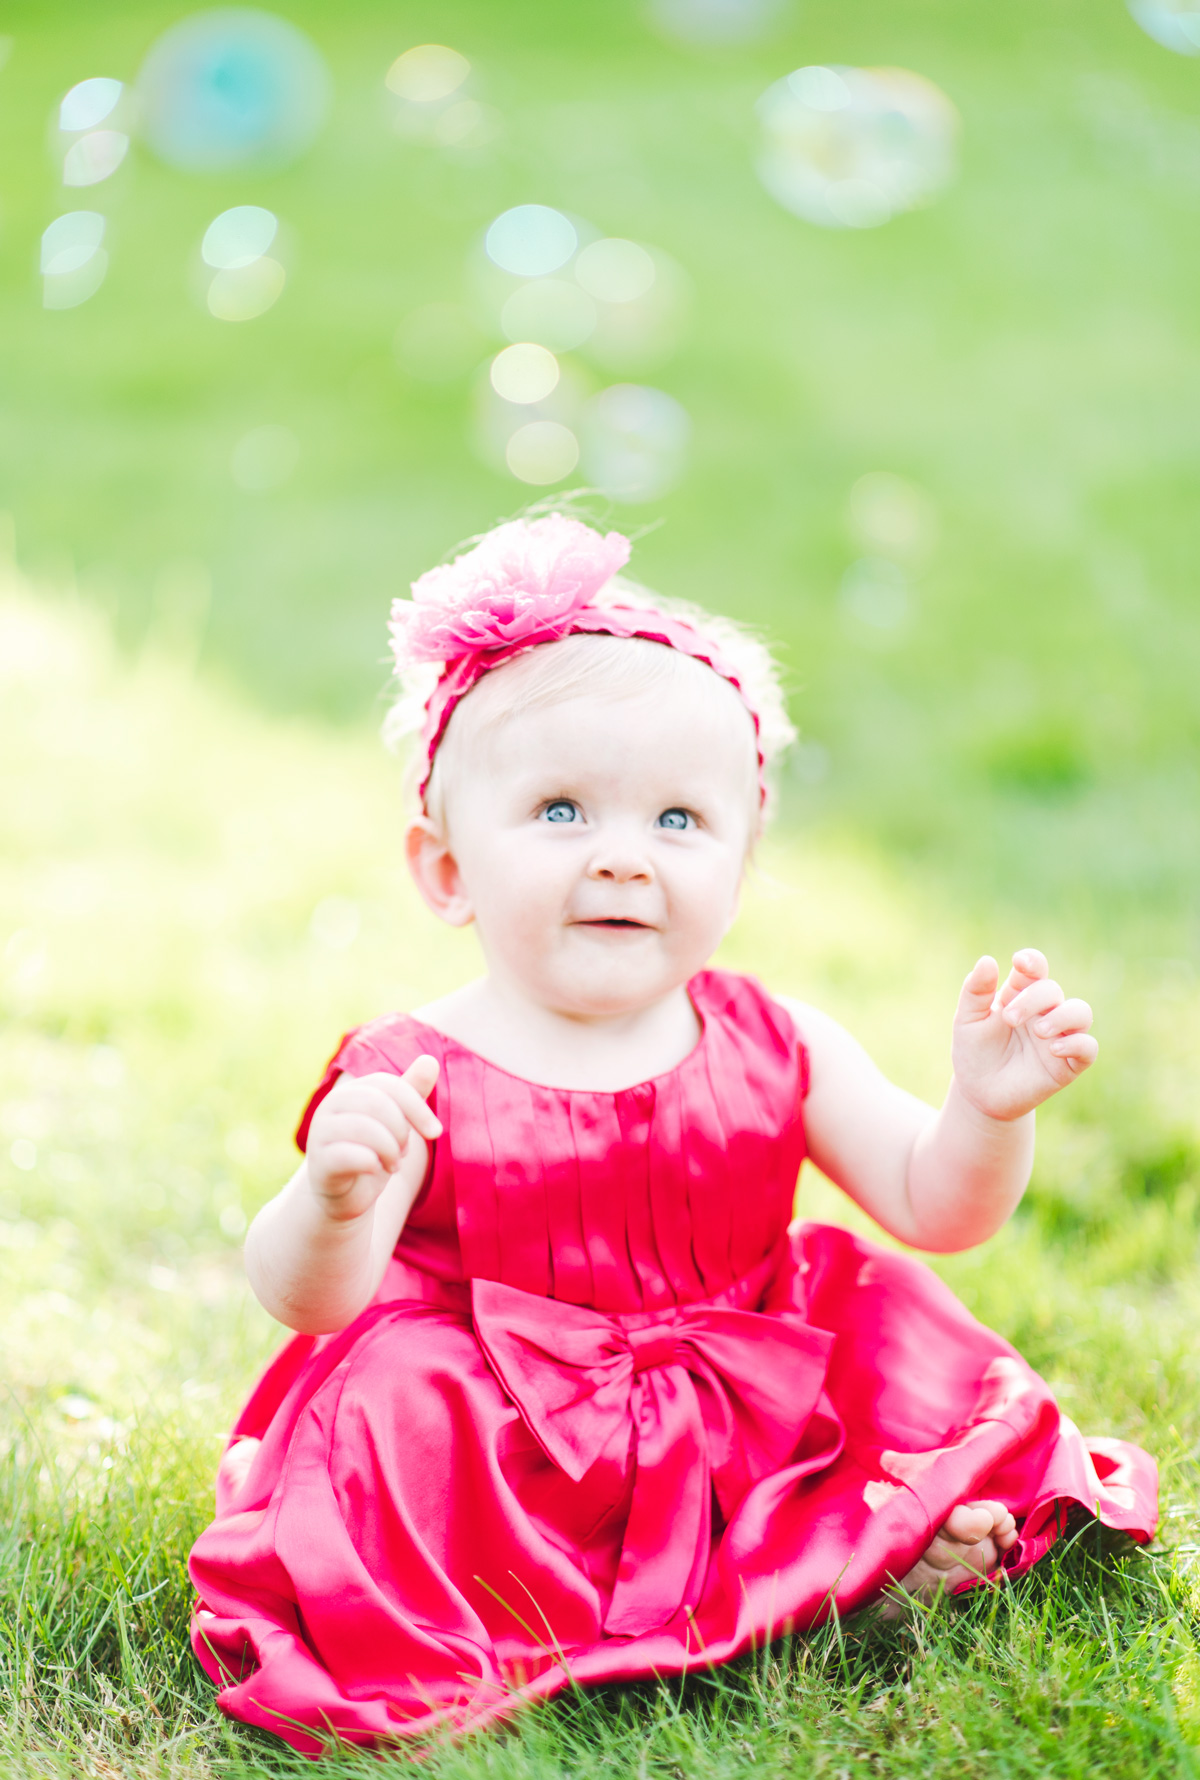 Baby girl in pink dress sitting on the grass smiling and playing with bubbles